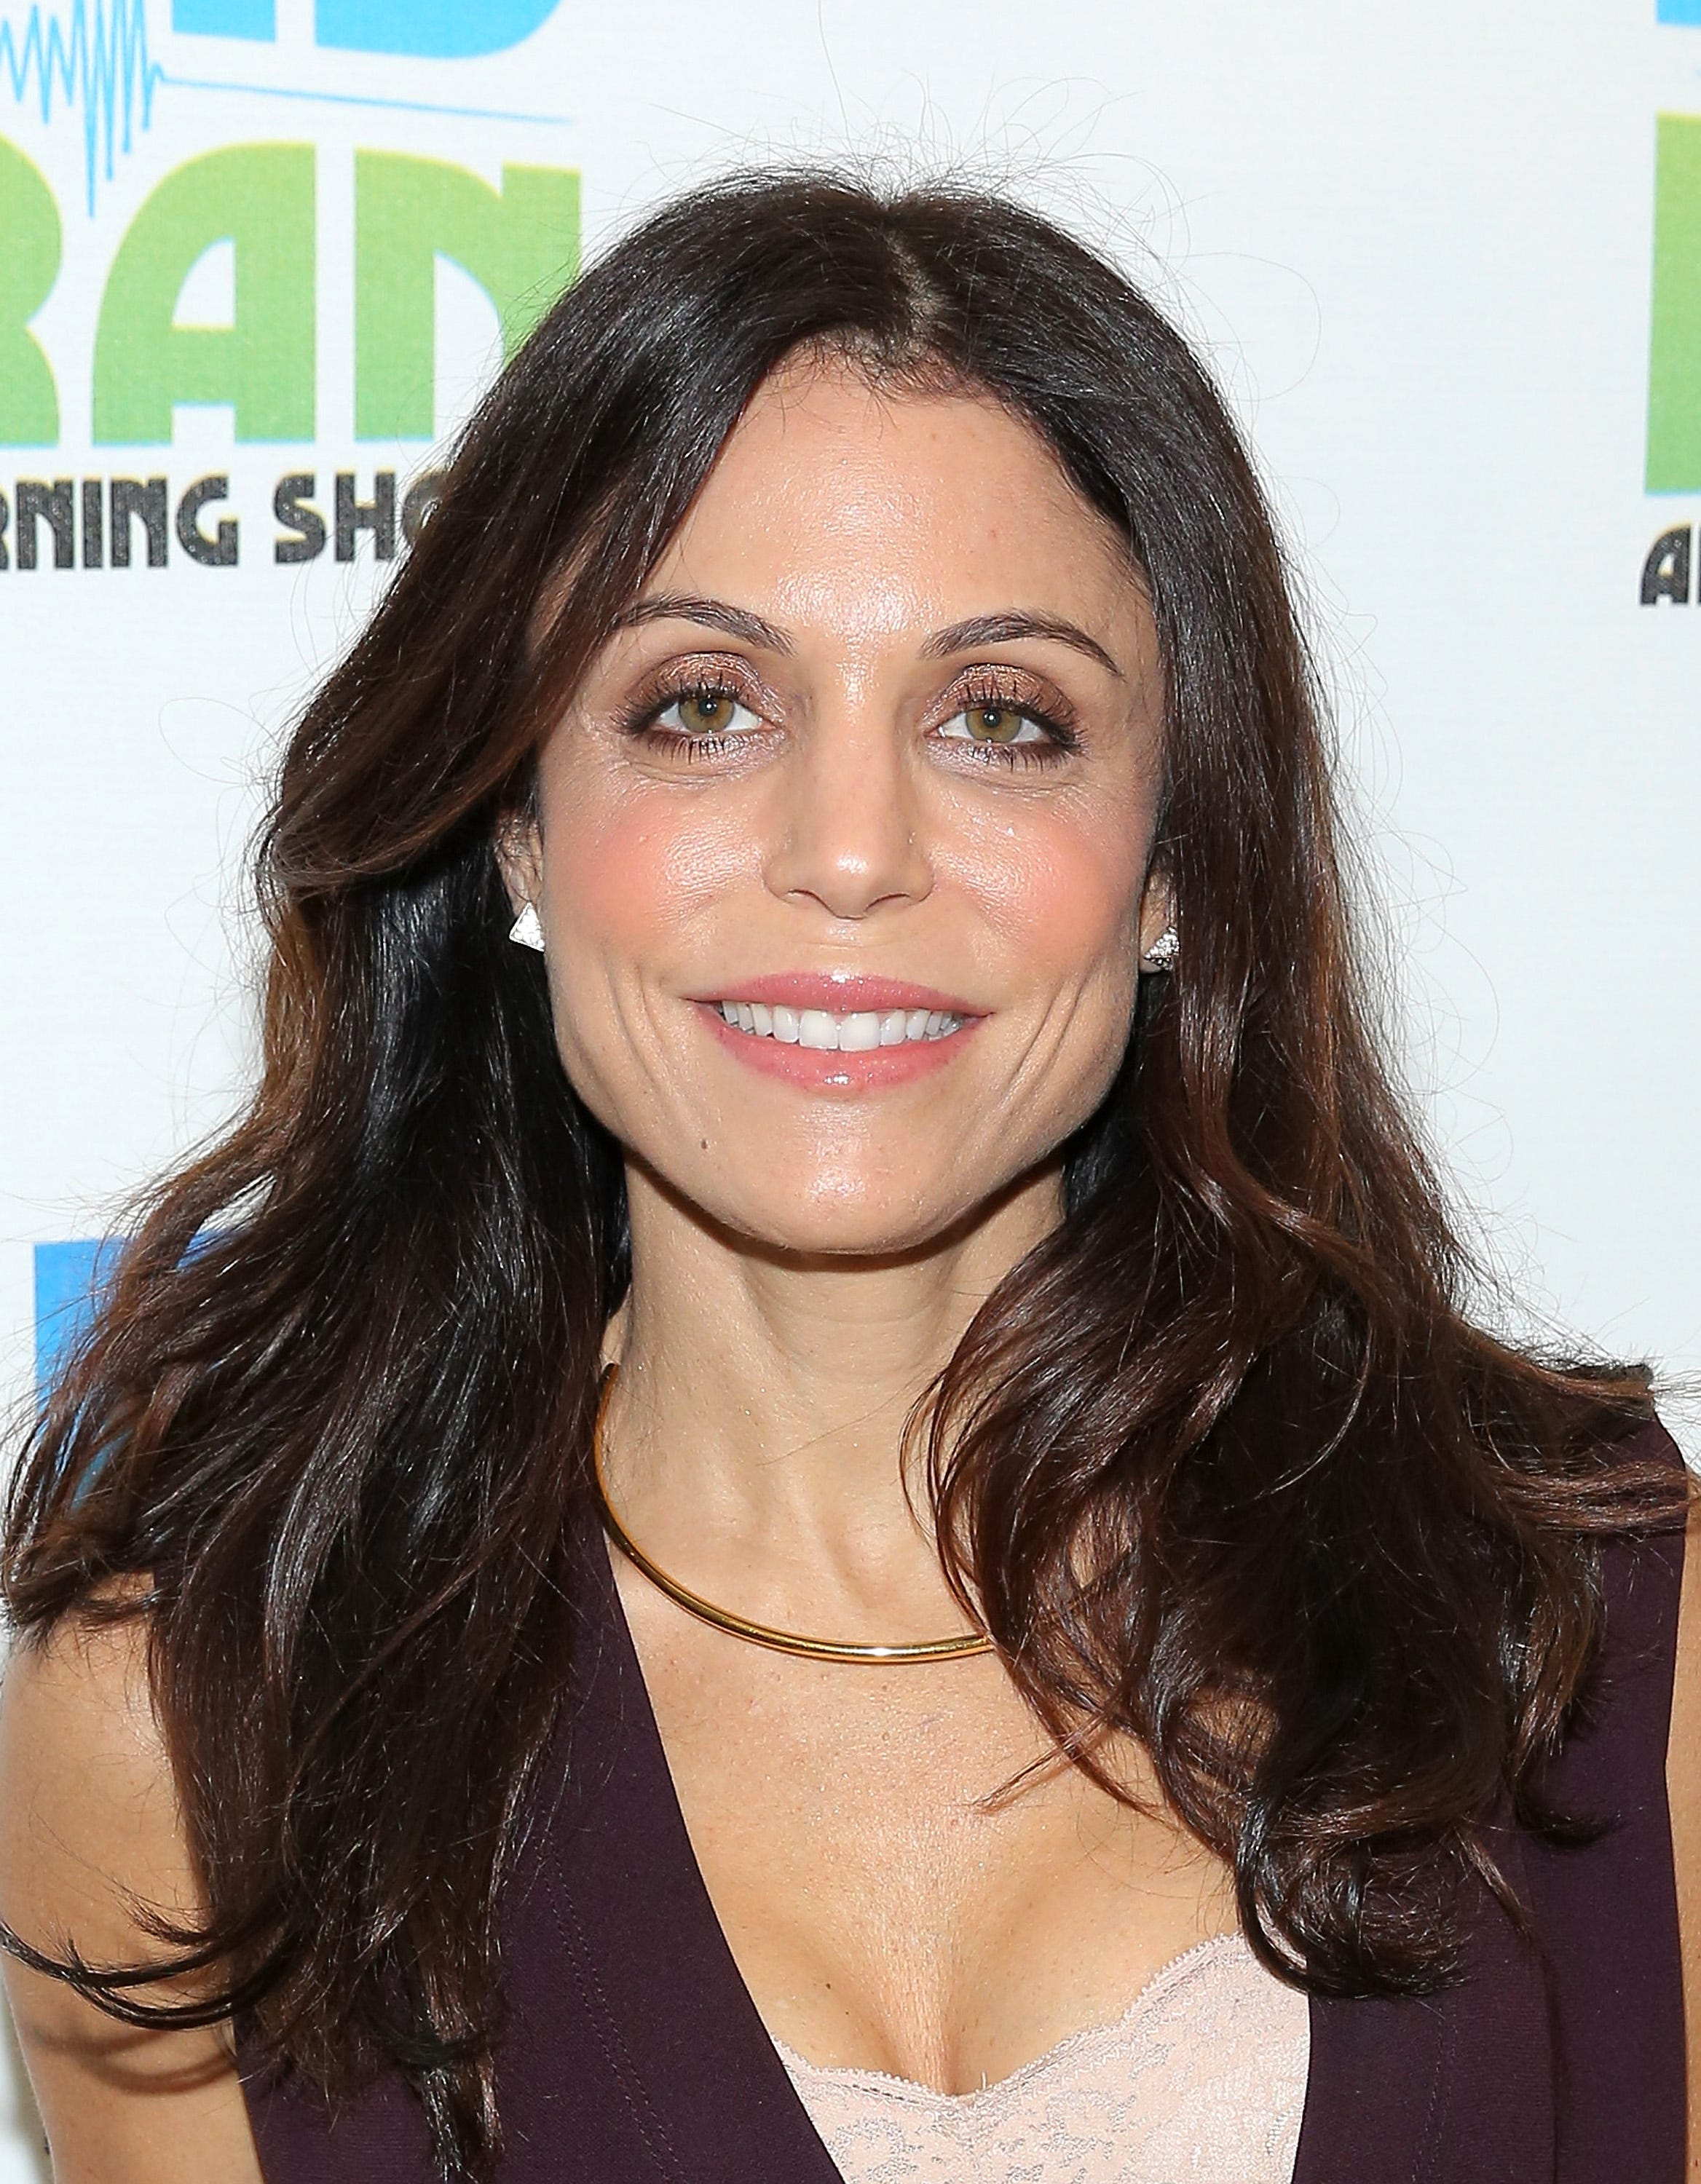 Bethenny Frankel's severe fish allergy forced her plane to turn around